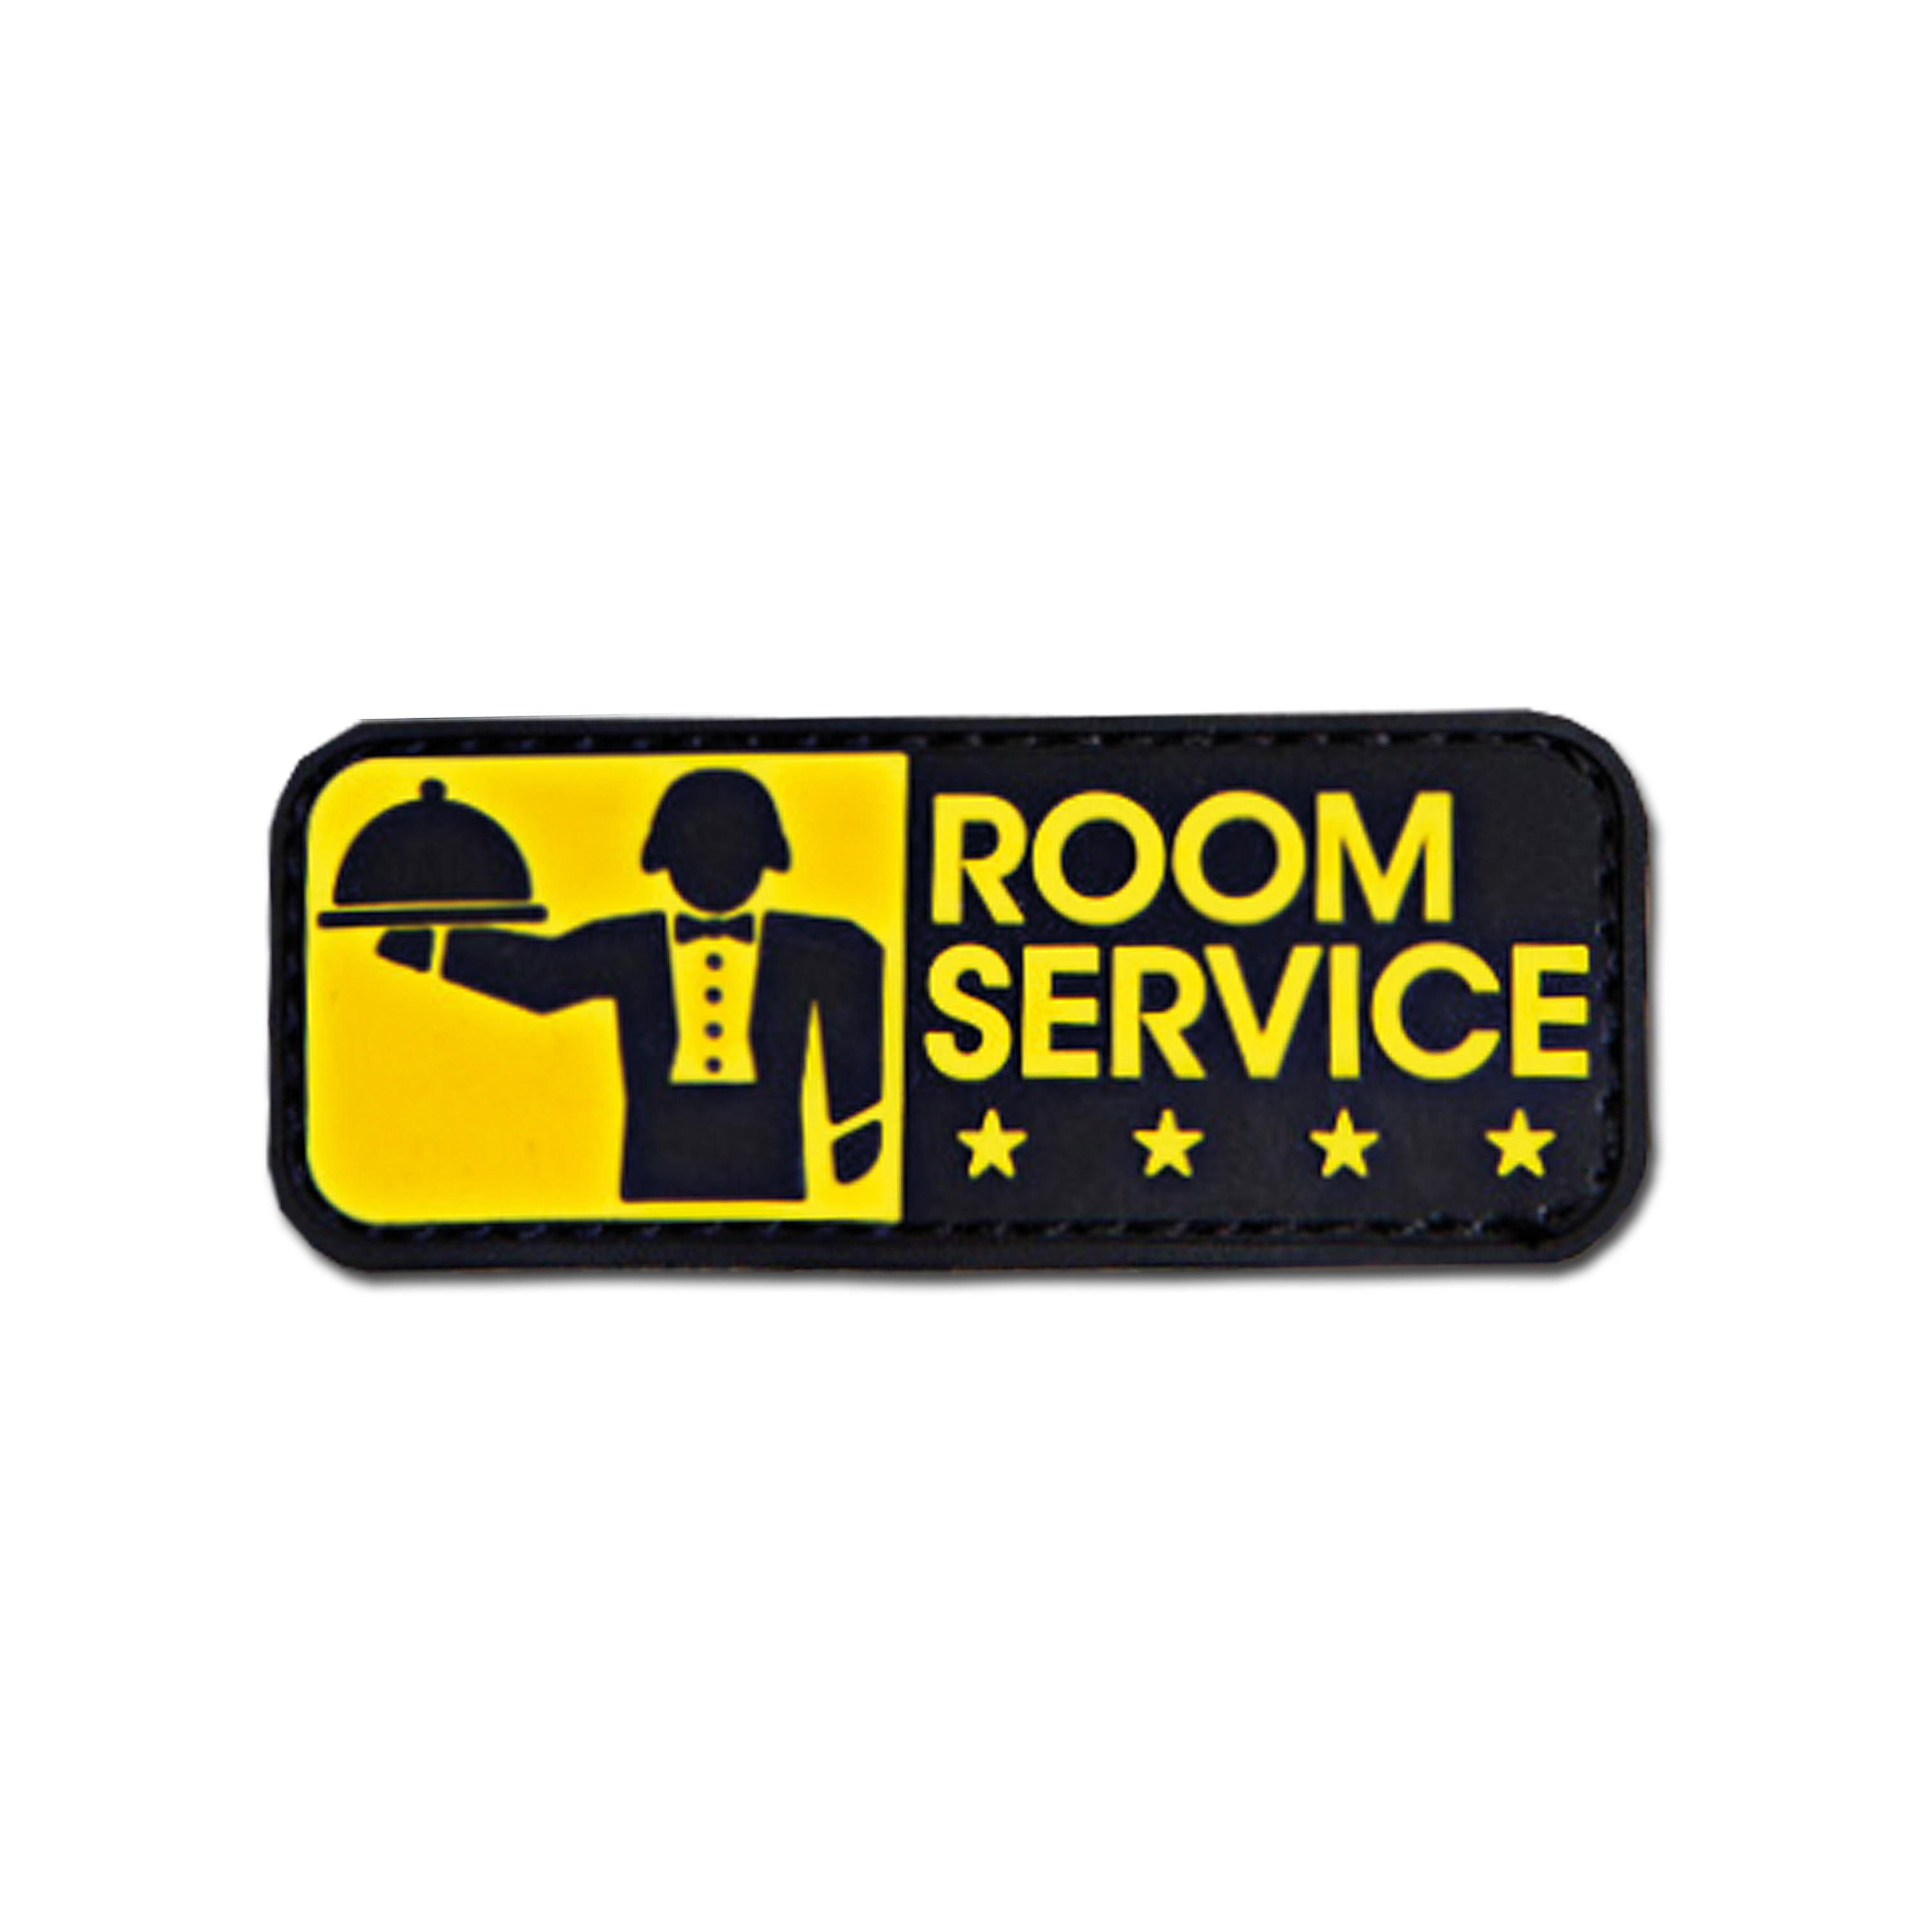 MilSpecMonkey Patch Room Service full color